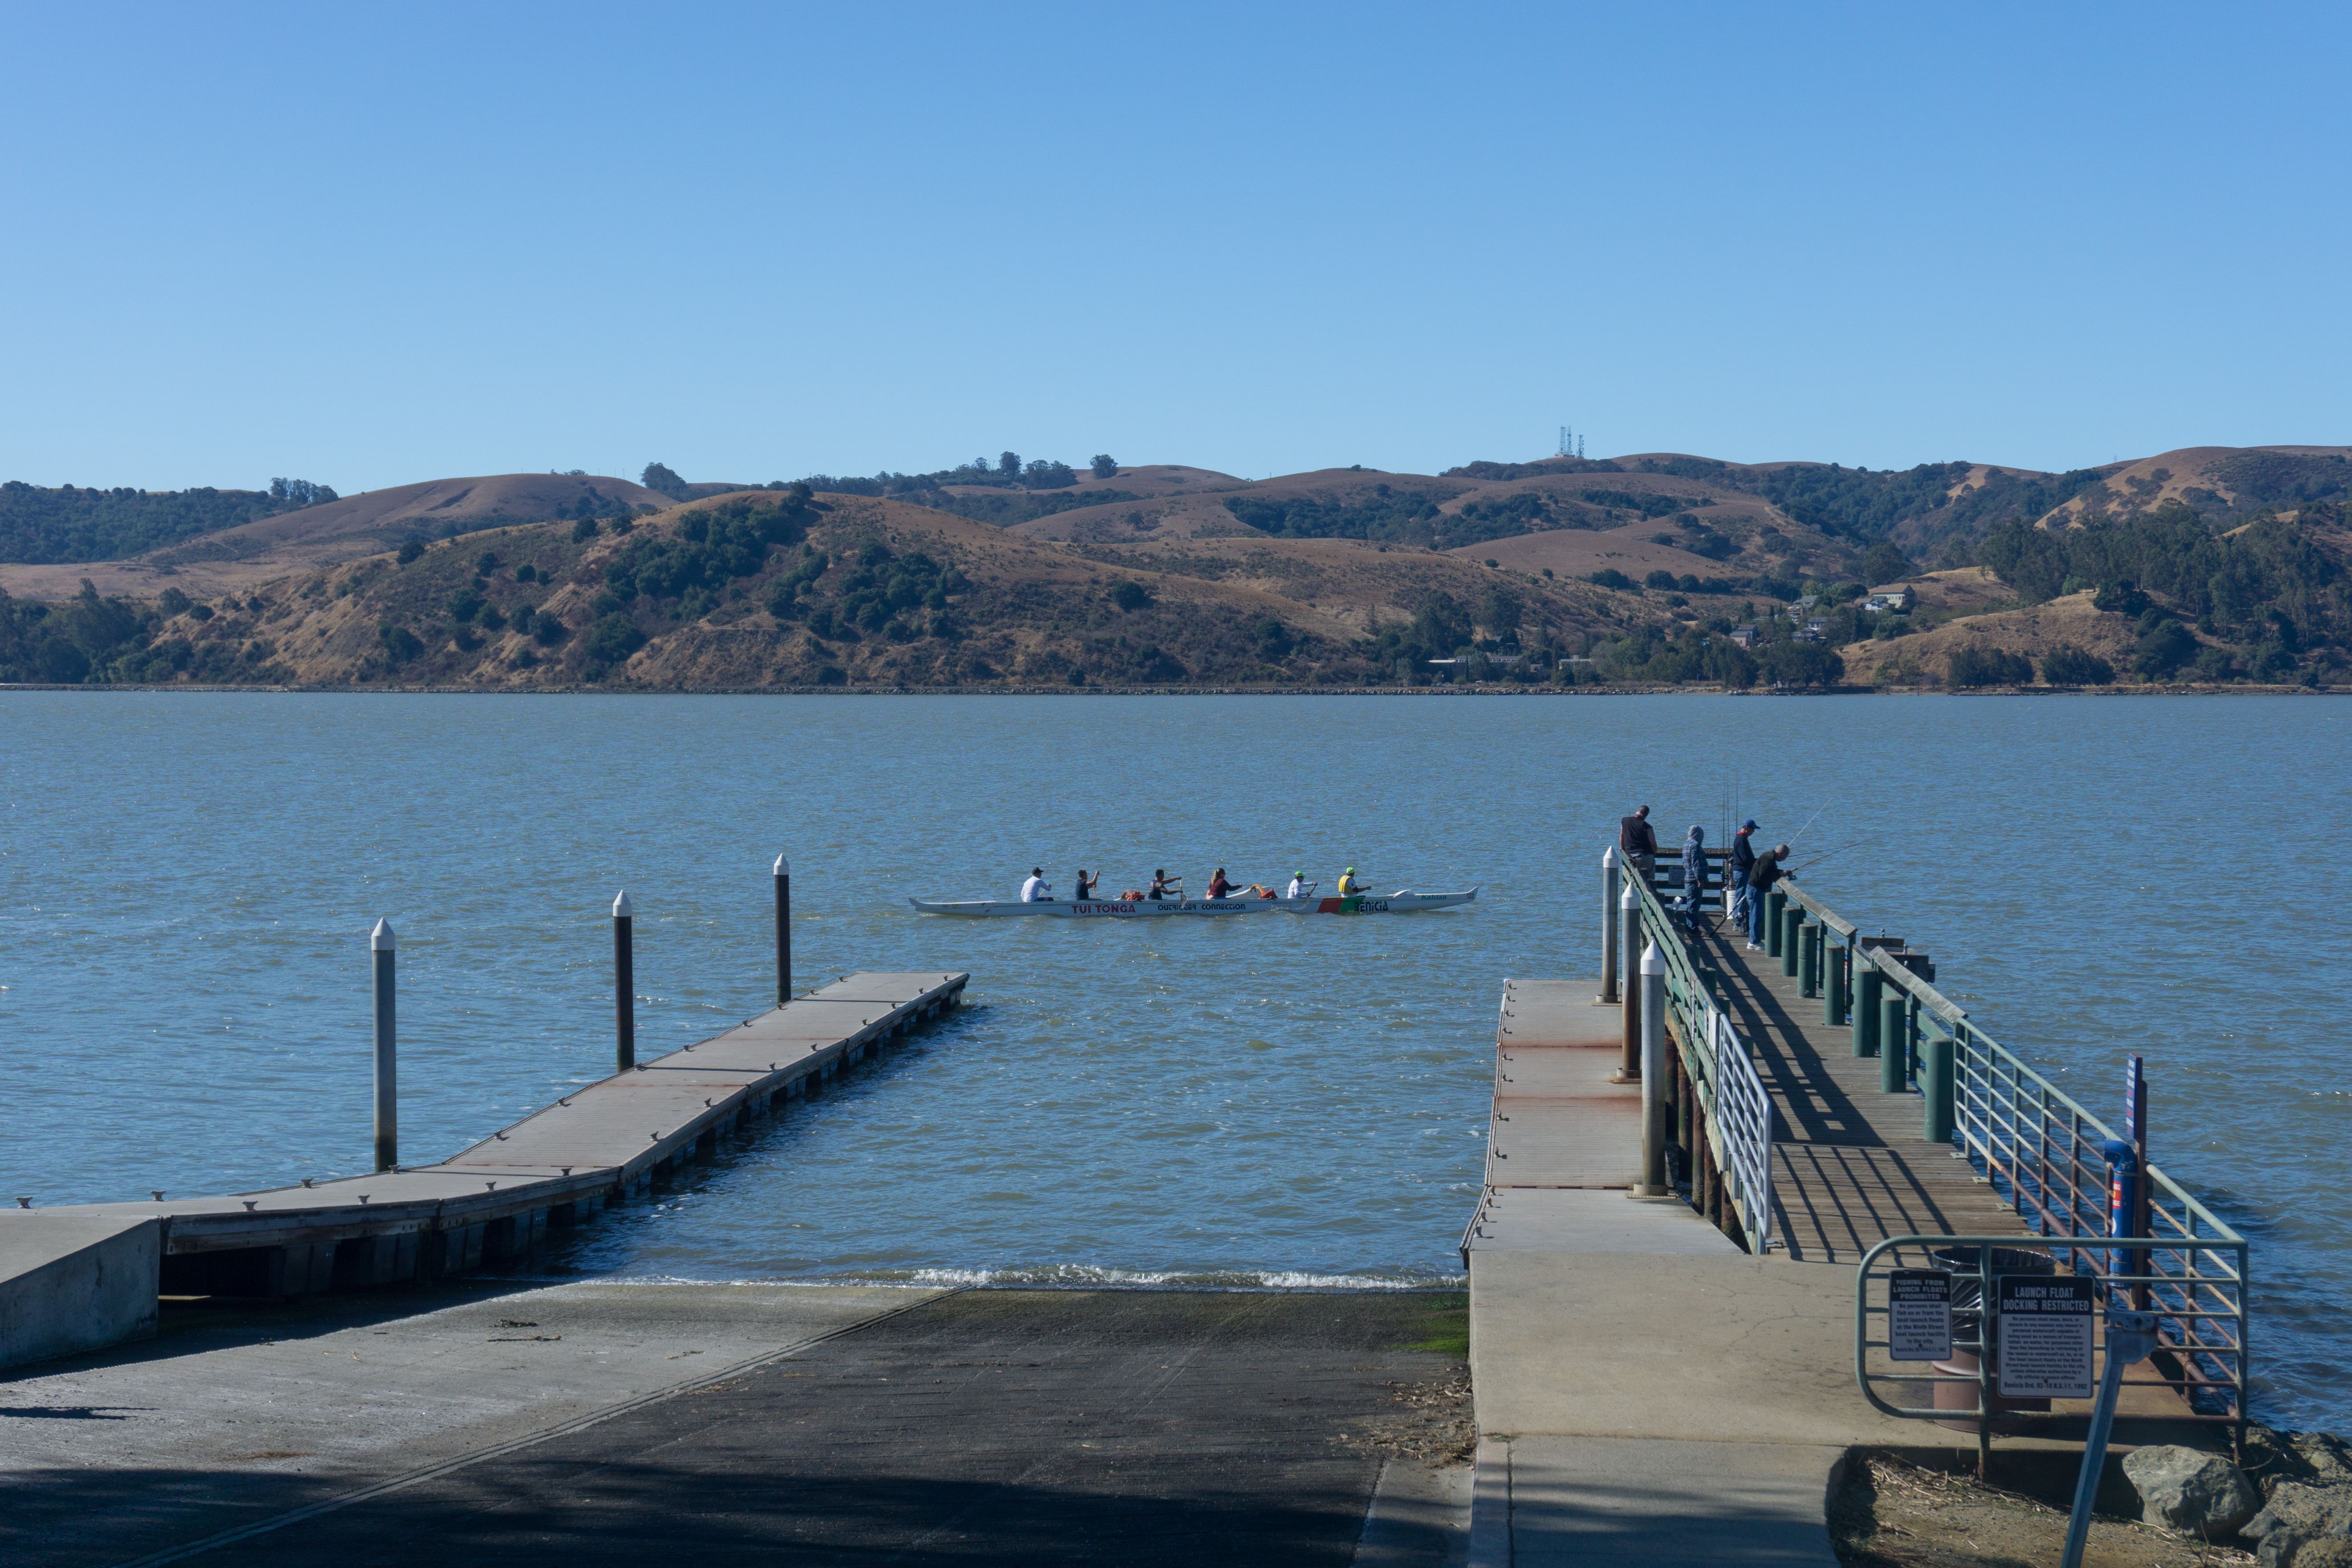 Boat ramp descending to water. Rowers in long sculling shell pass by